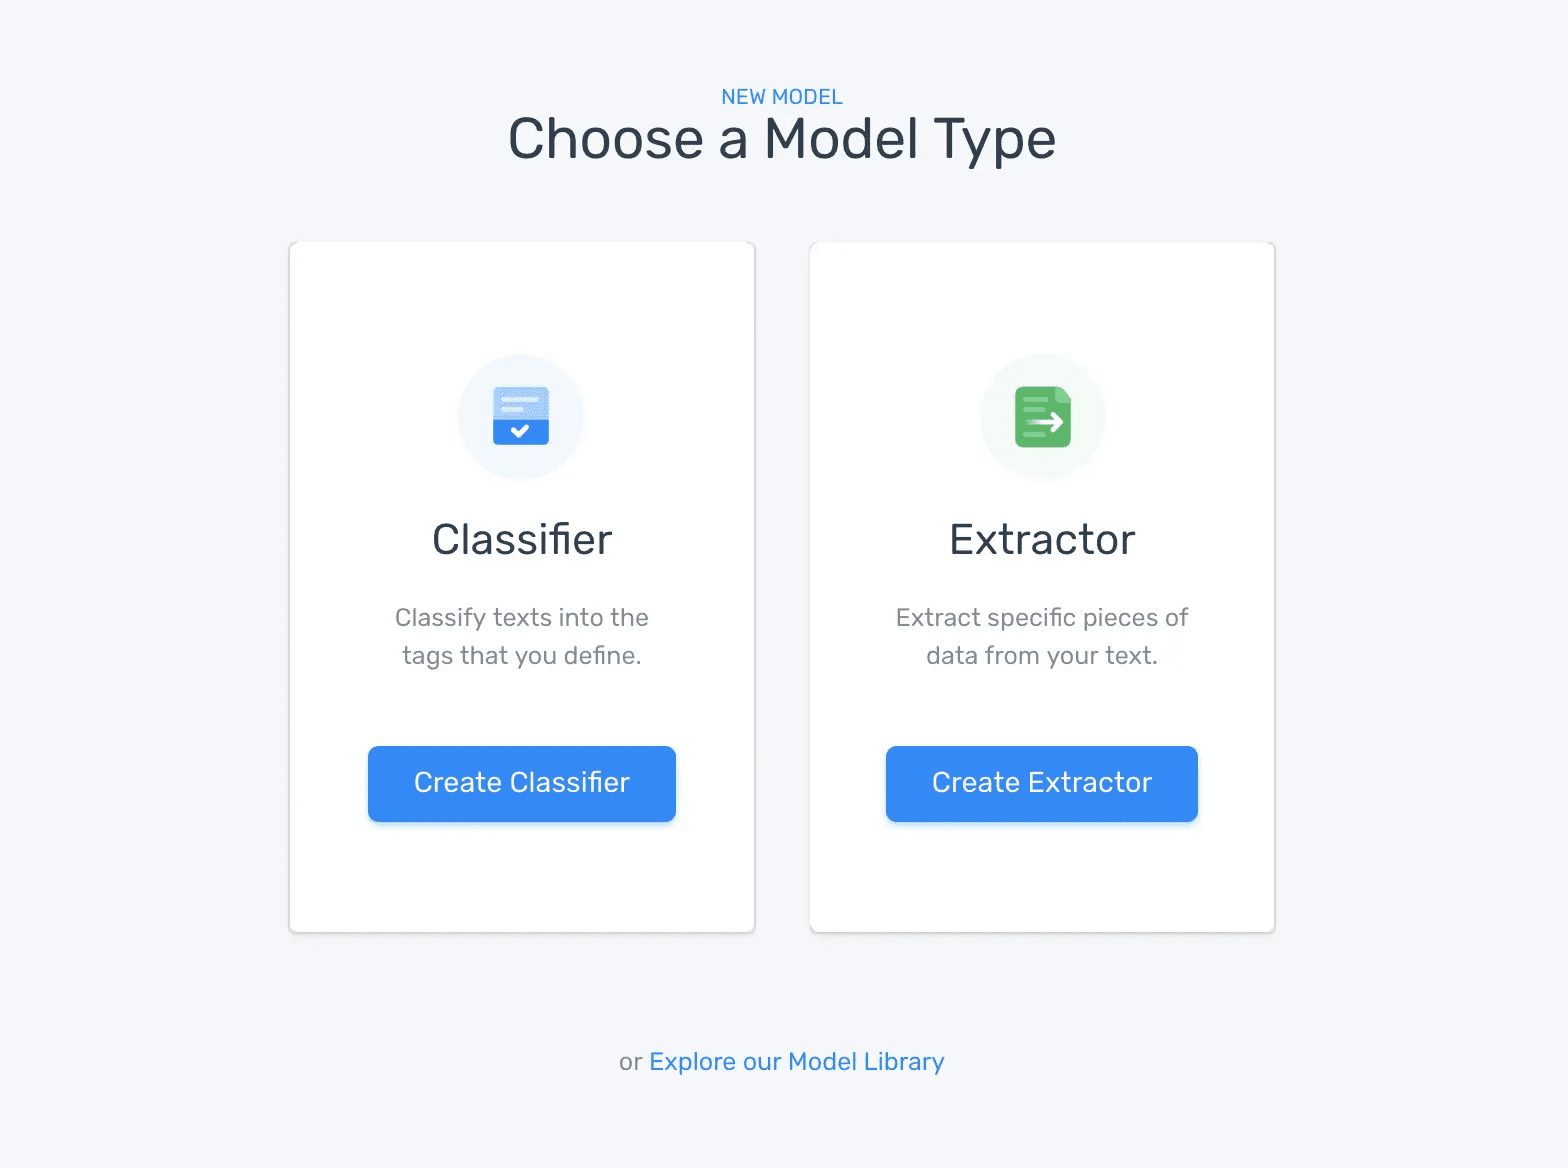 The option to choose an extractor or classifier in MonkeyLearn's model builder.